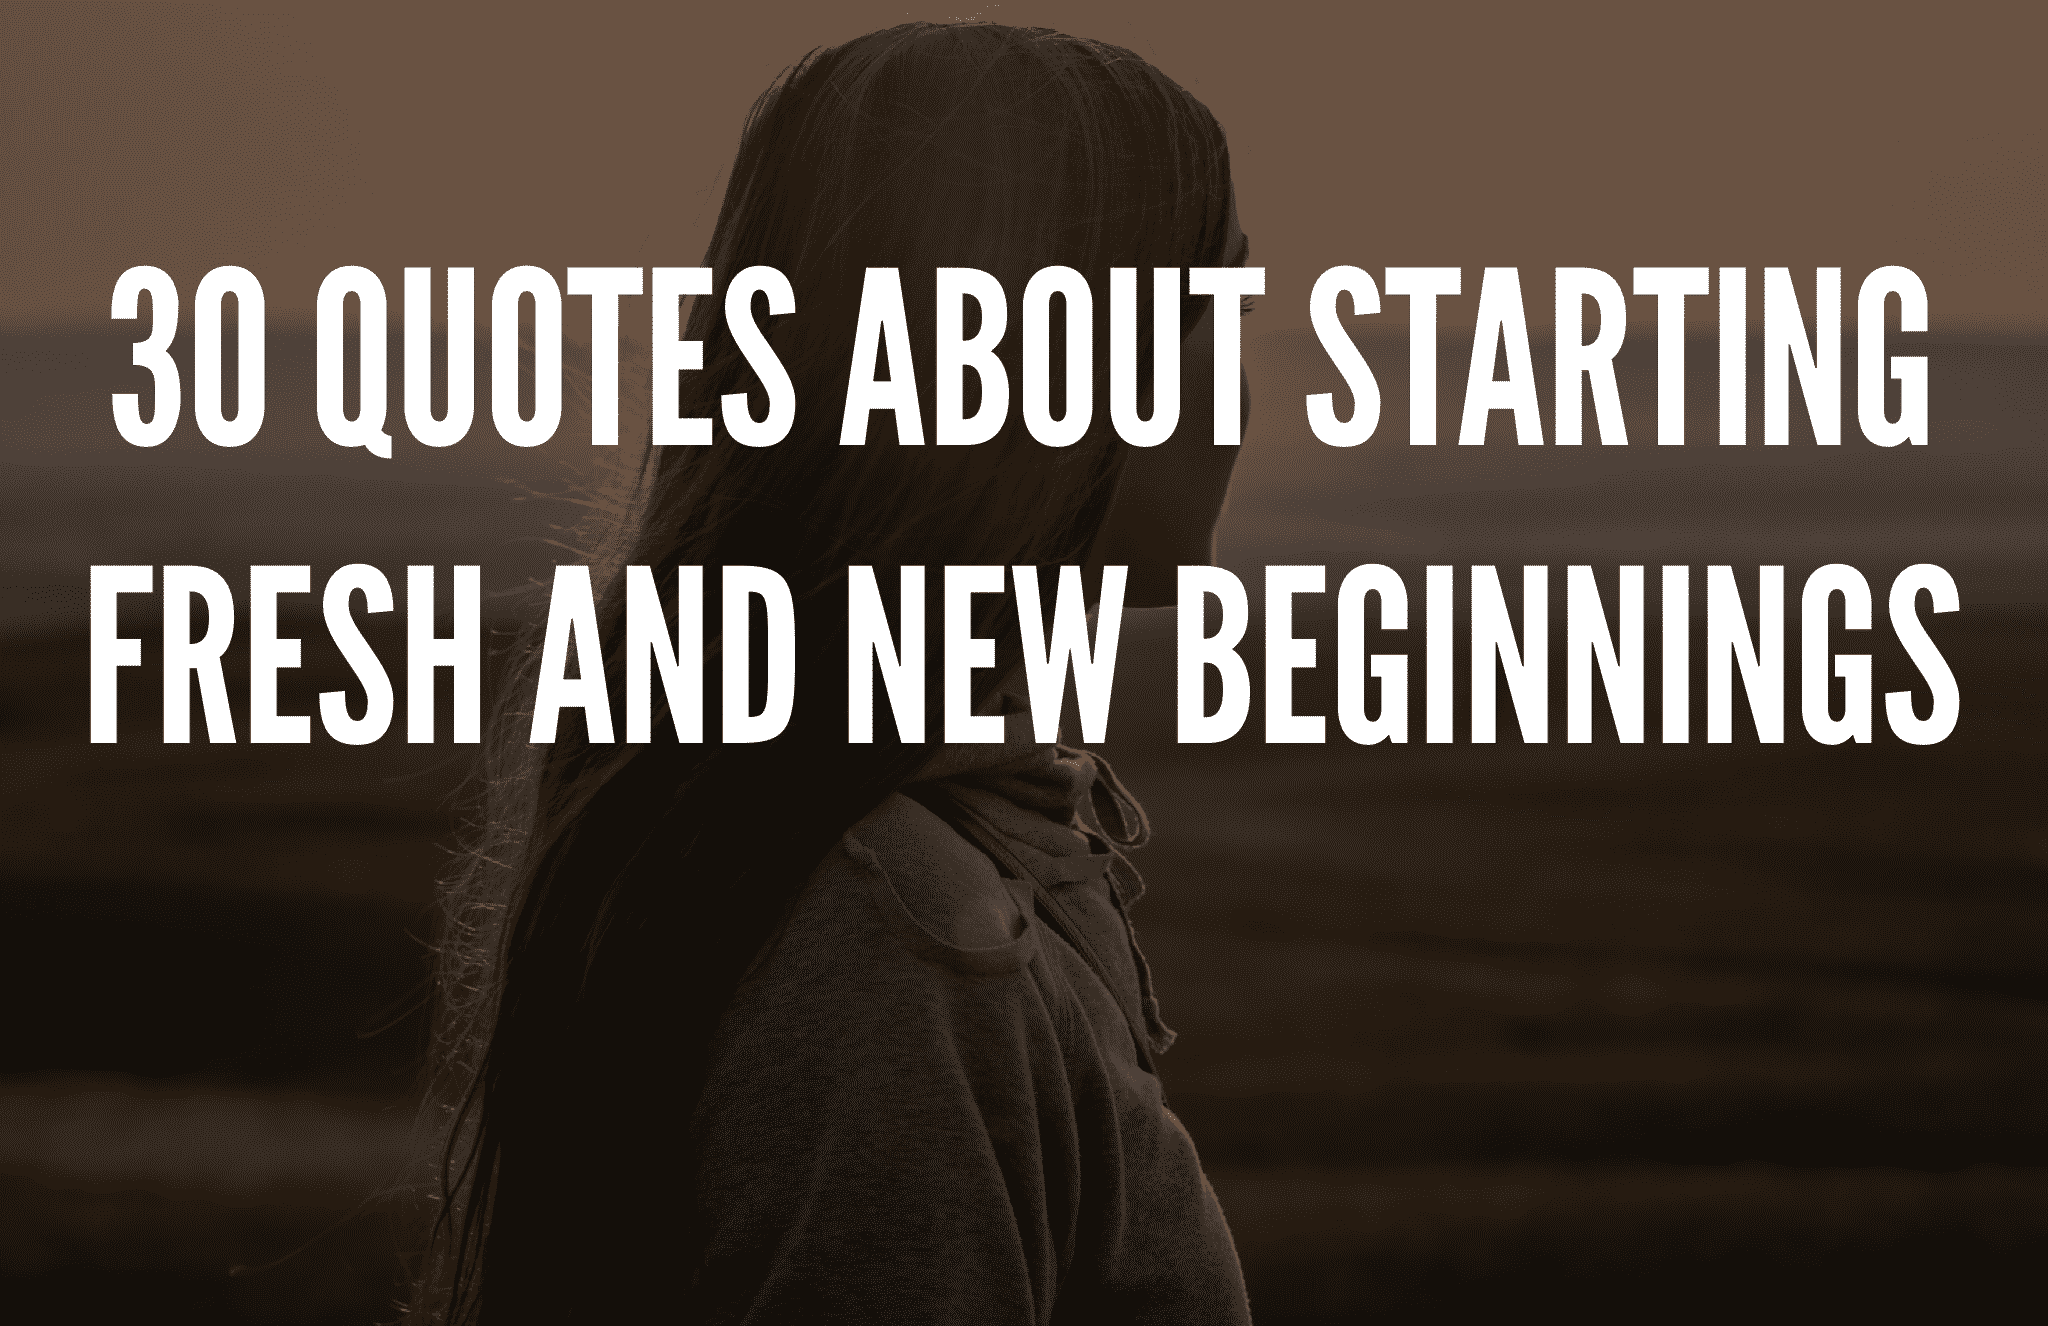 30 Quotes About Starting Fresh And New Beginnings